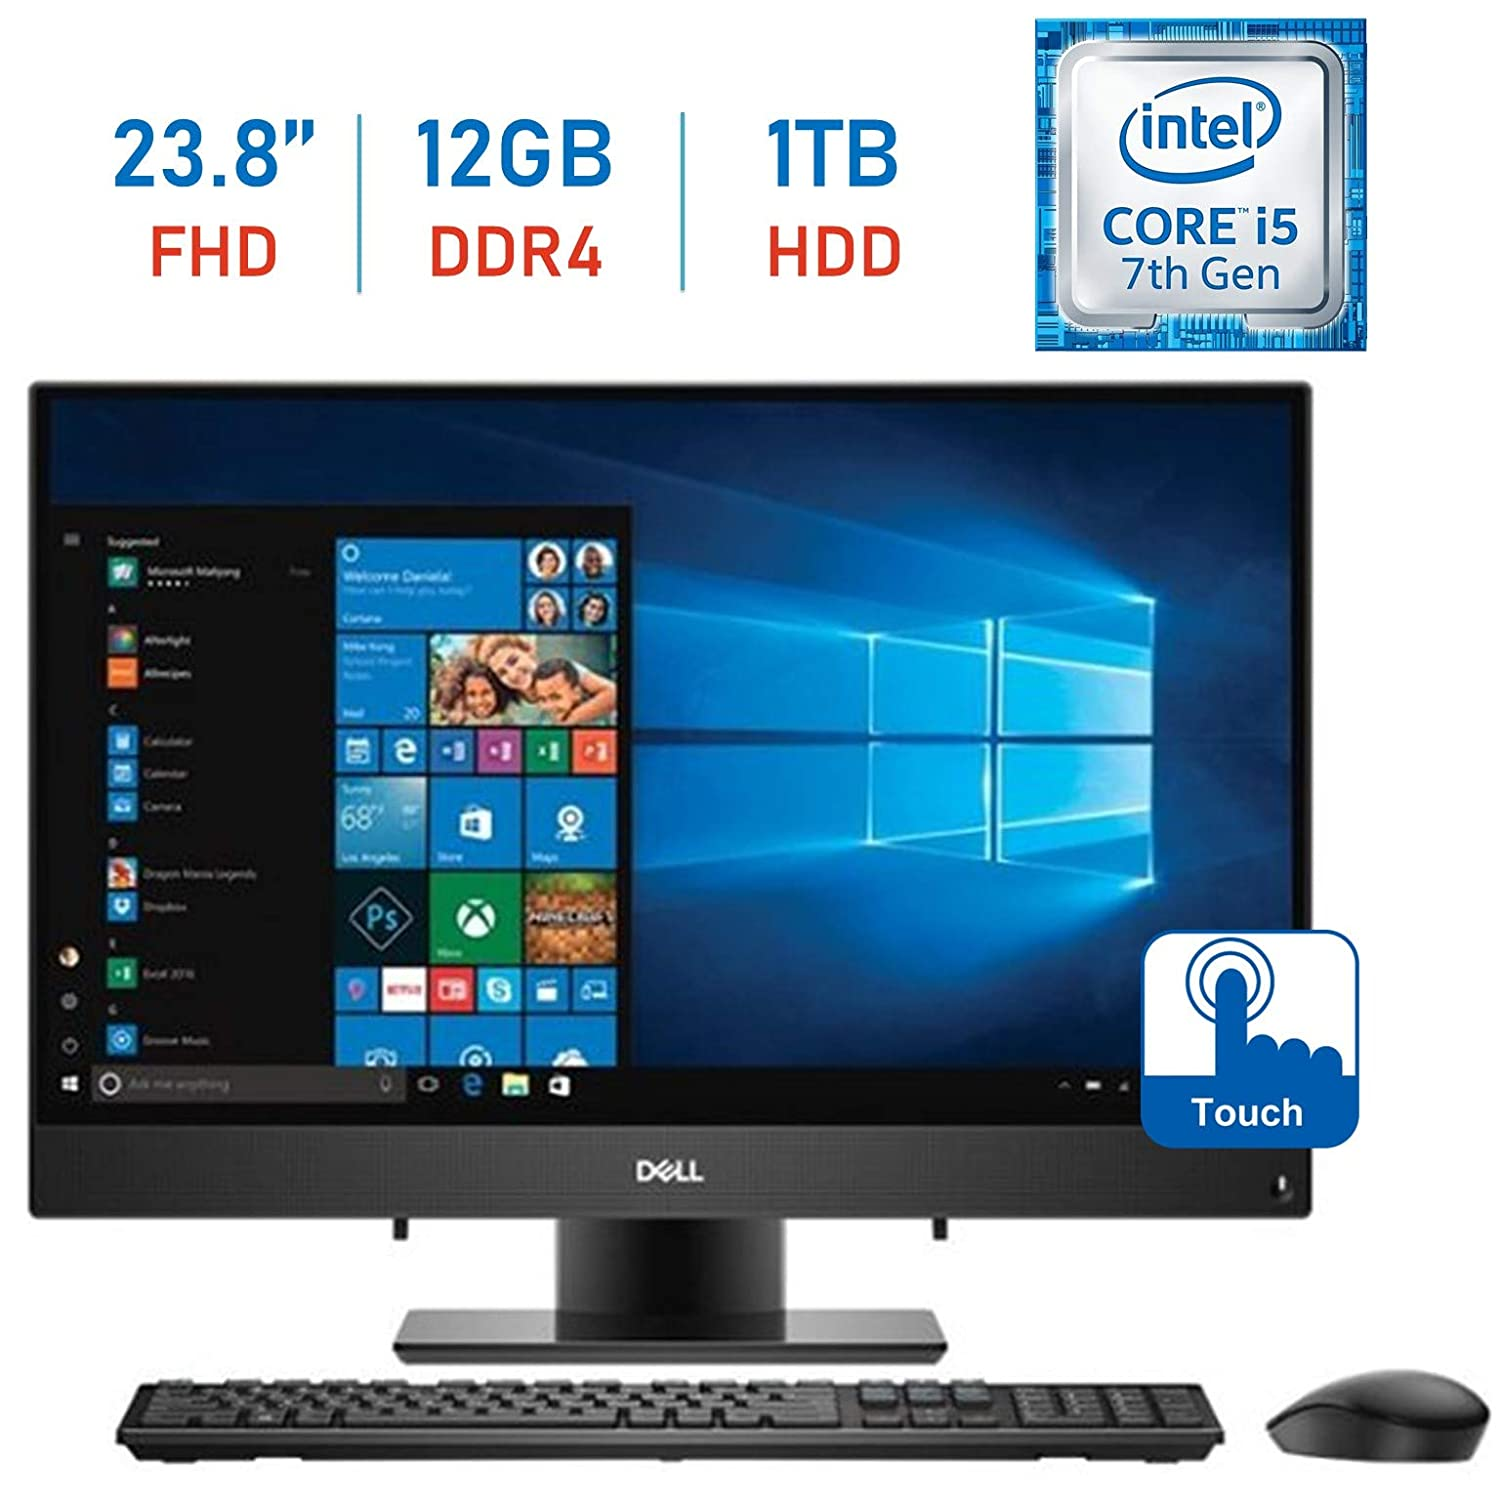 Dell Inspiron 23.8-inch FHD Touchscreen All-in-One Desktop PC, Intel Core i5-7200U GHz, 12GB RAM + 16GB Intel Optane Memory, 1TB HDD, Webcam, HDMI, Bluetooth, Wireless Keyboard & Mouse, Windows 10